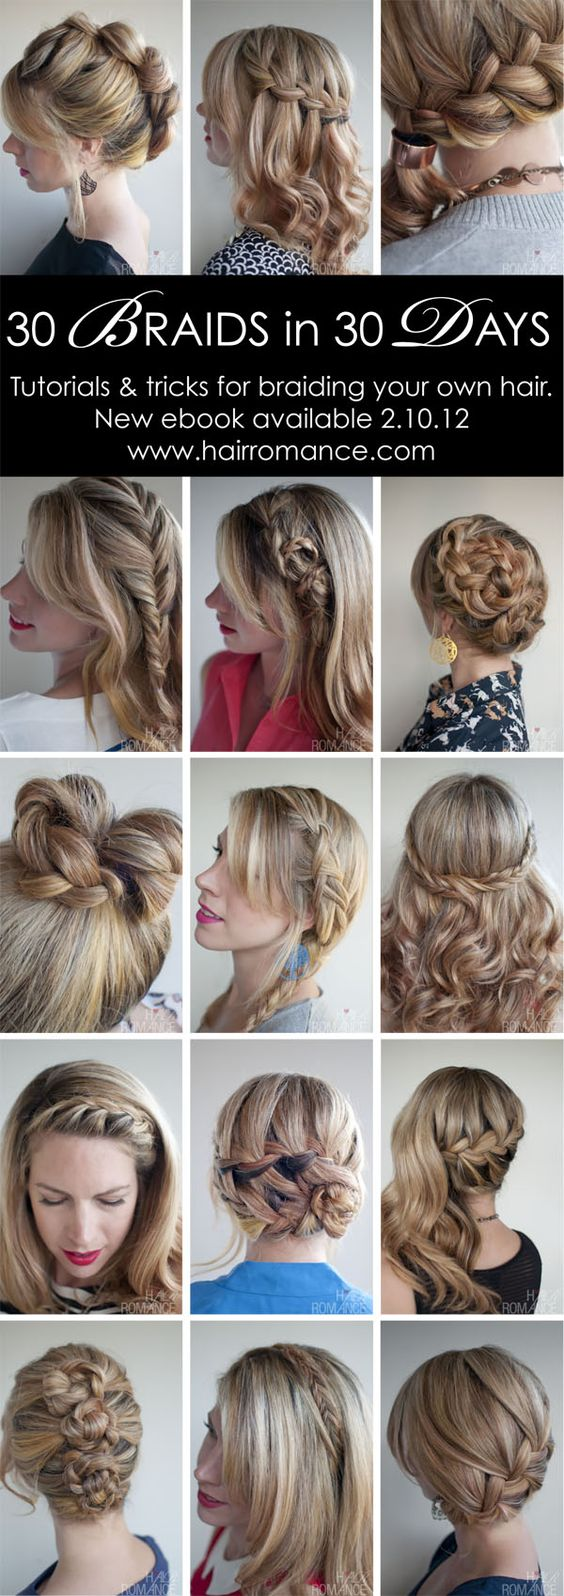 The #30Braids30Days hairstyle challenge is going to become an ebook! The ebook will launch on 2.10.12 - stay tuned and check Hair Romance for more details.